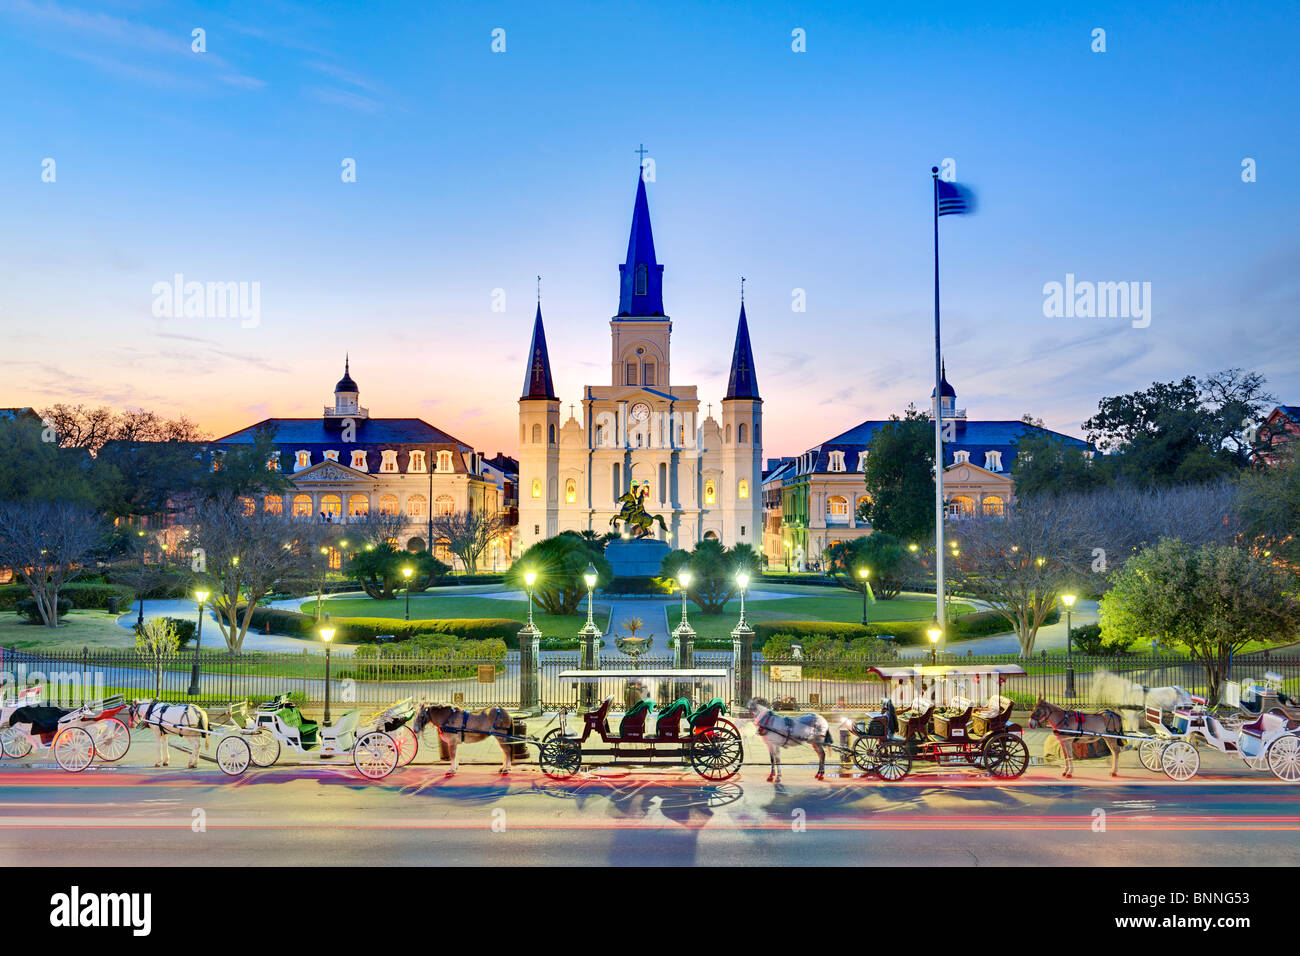 St Louis Cathedral, Jackson Square, New Orleans, Louisiana Stock Photo